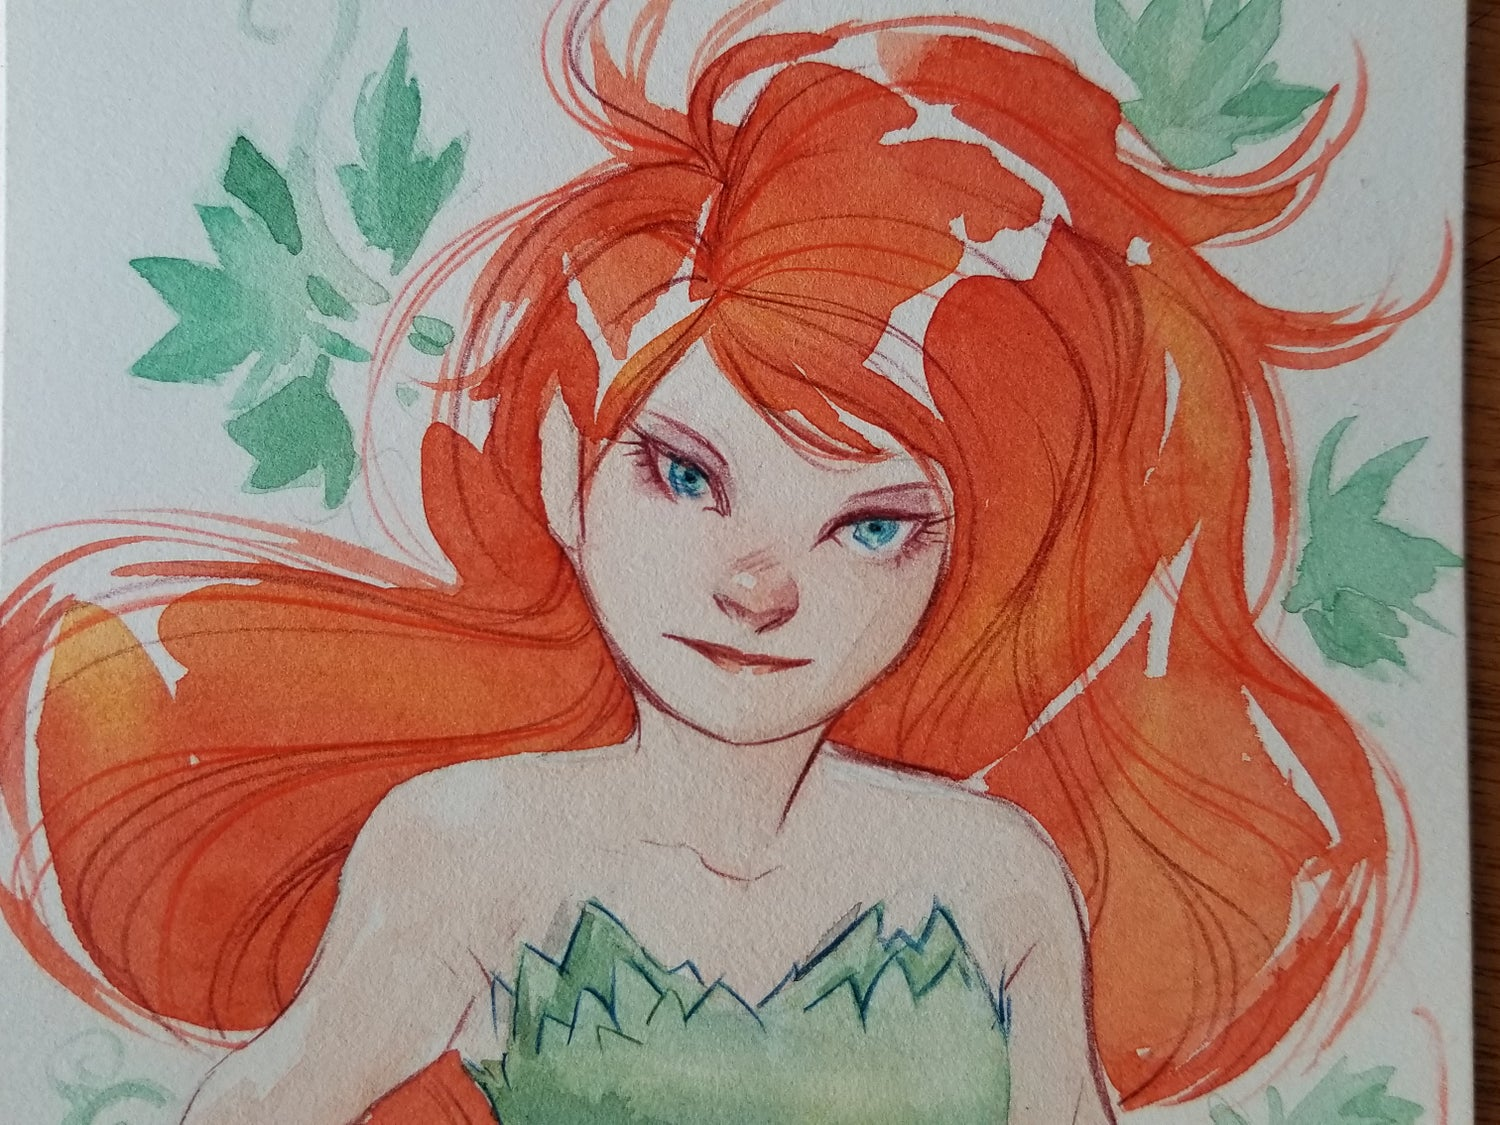 Image of 2018 SDCC Poison Ivy